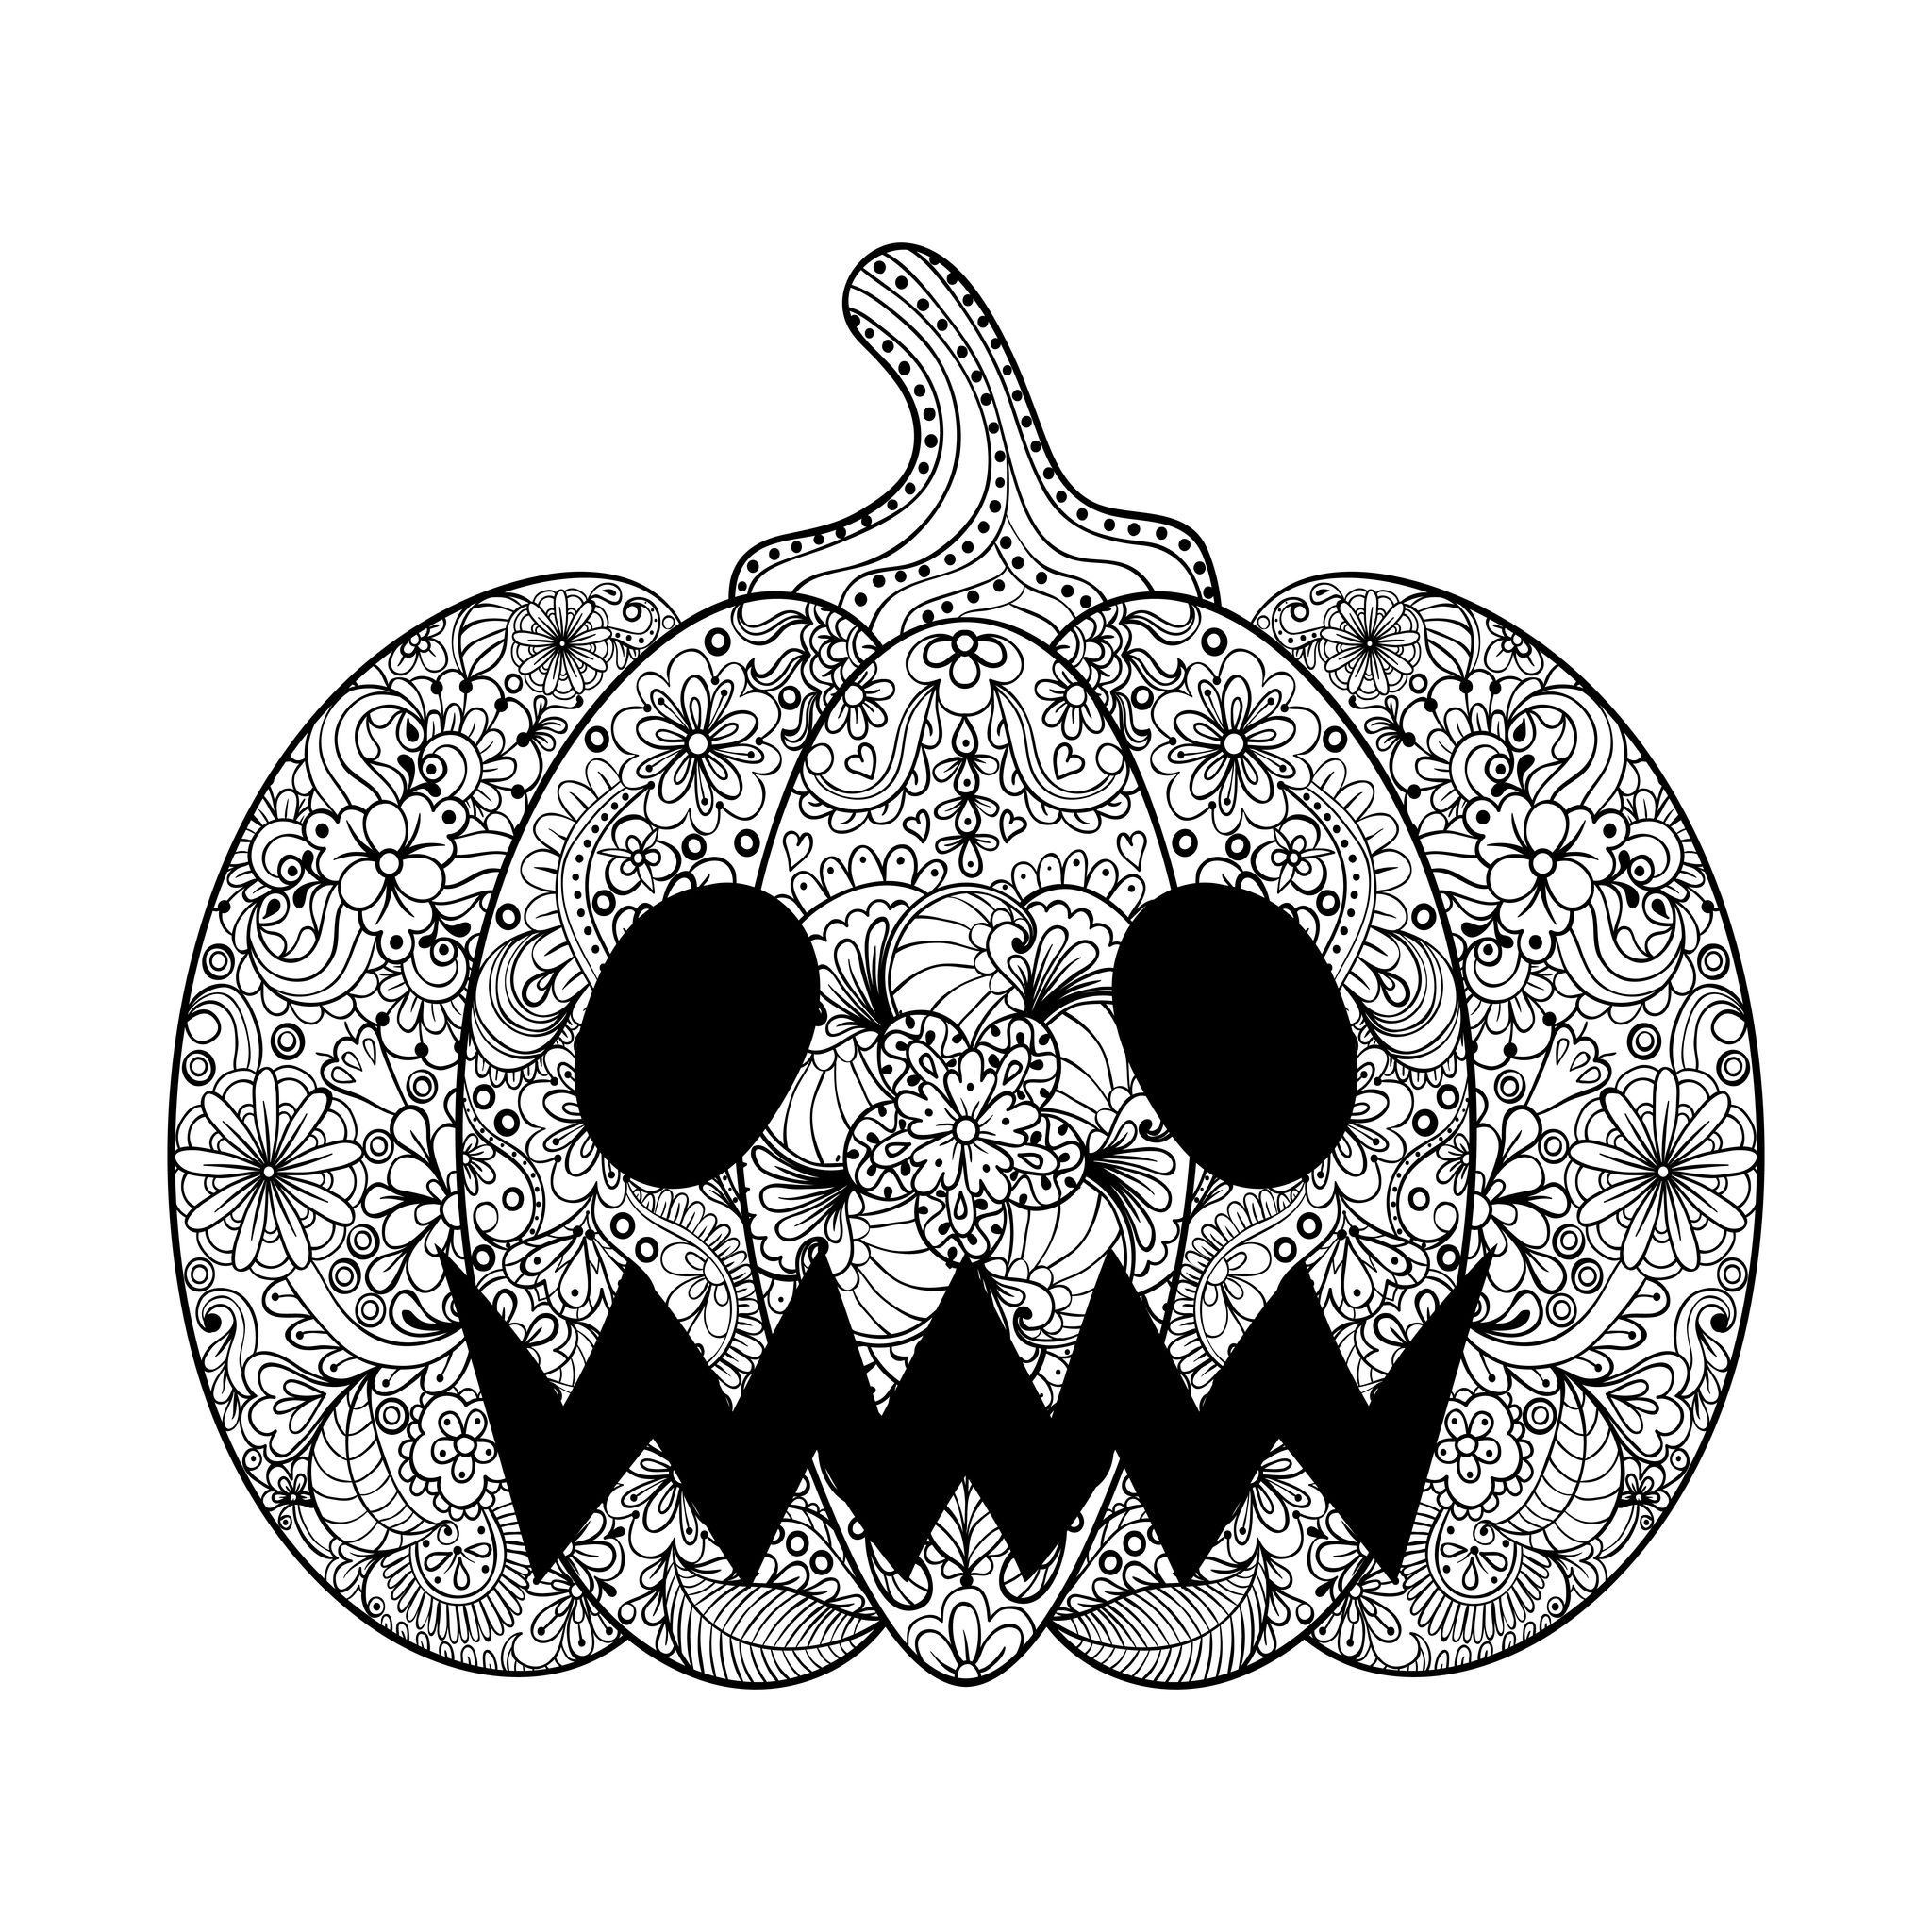 halloween pumpkin pictures to print and color halloween pumpkin coloring pages for kids dora123com and pumpkin halloween color pictures to print